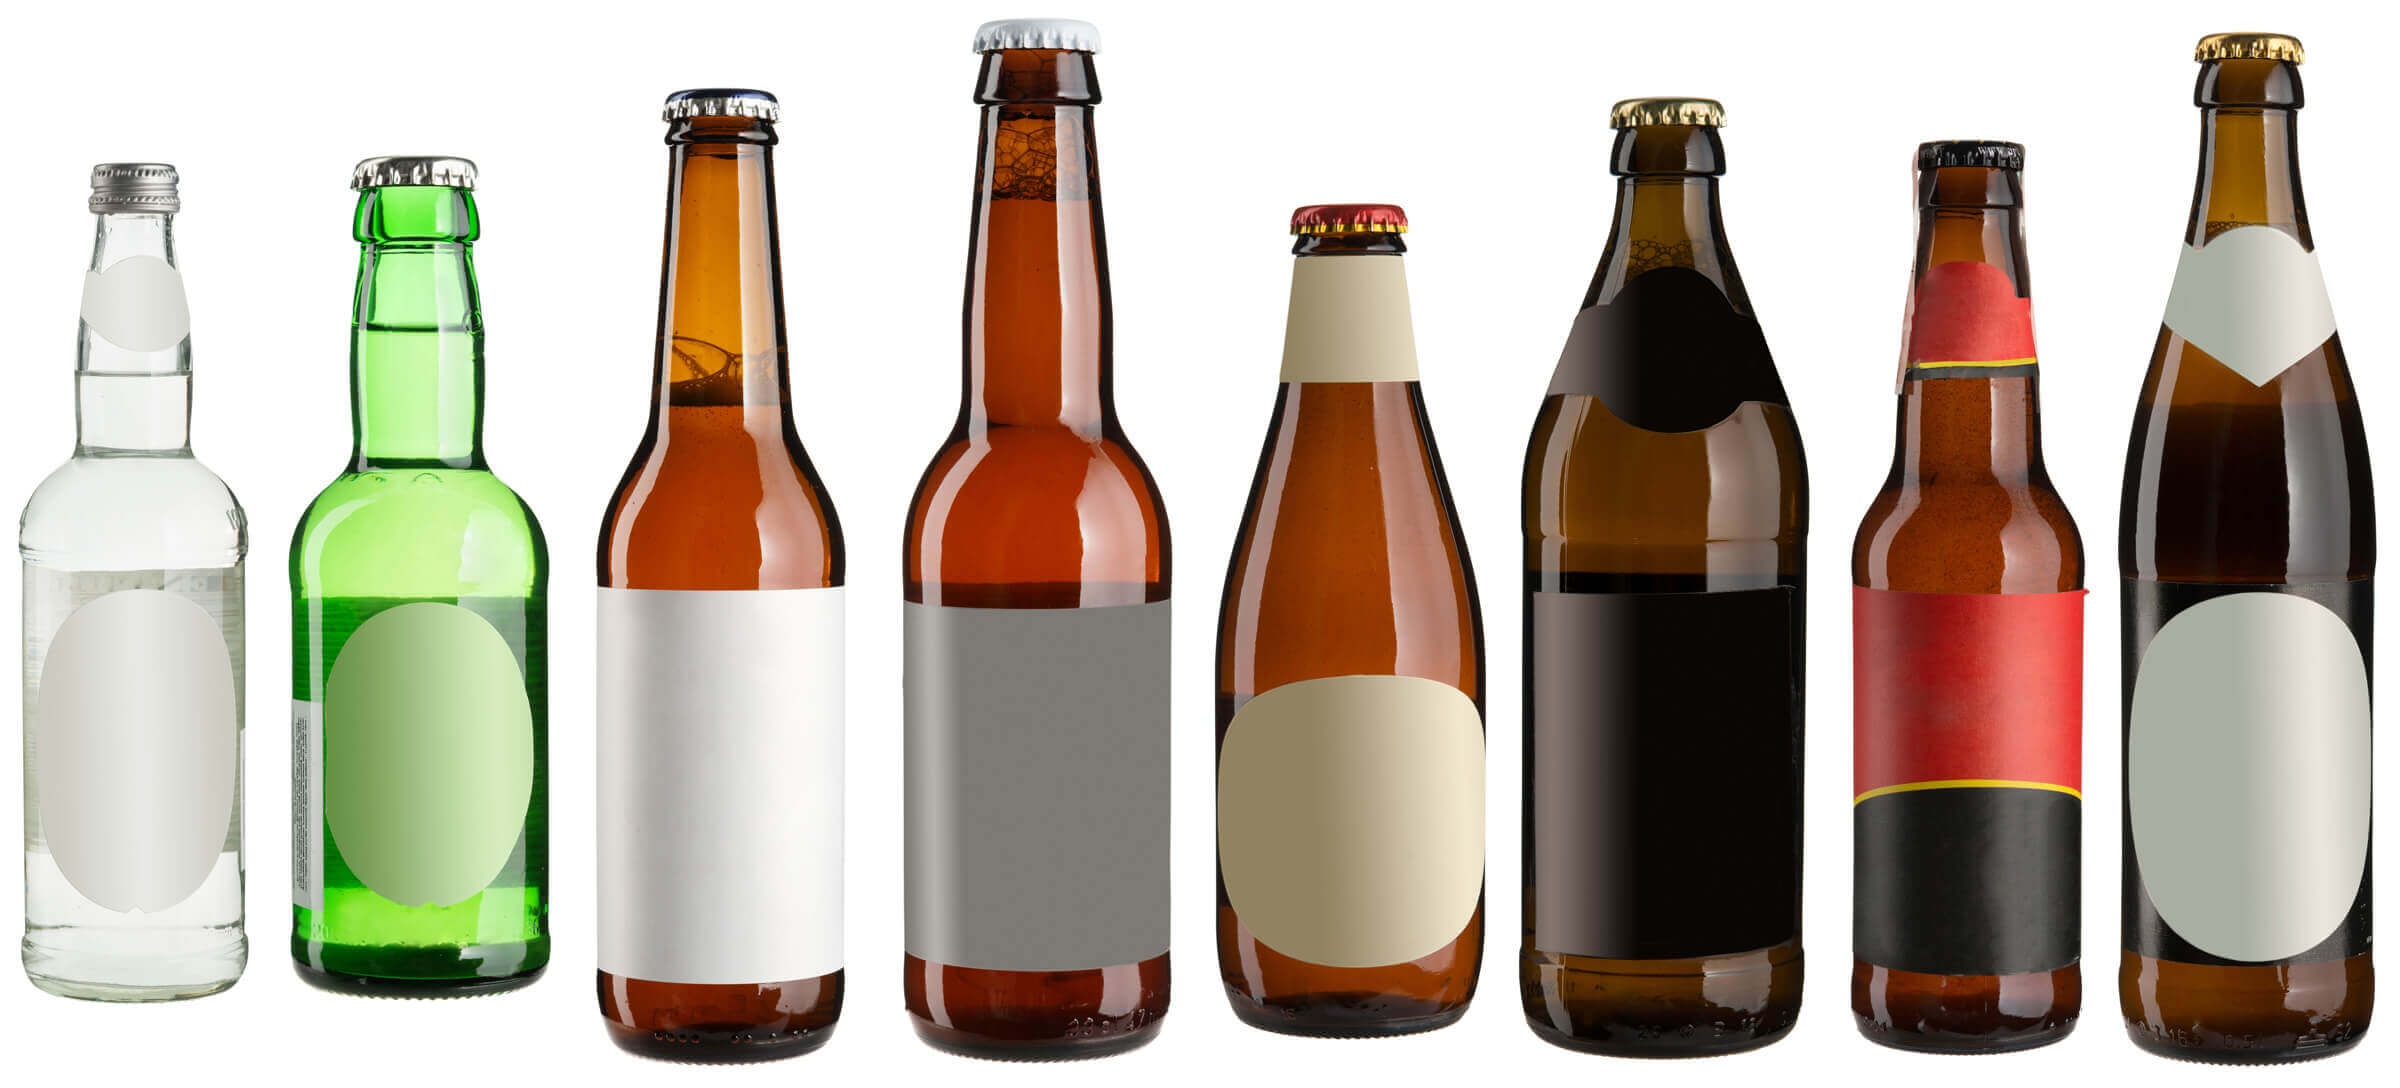 Glas bottles can have a variety of different labels